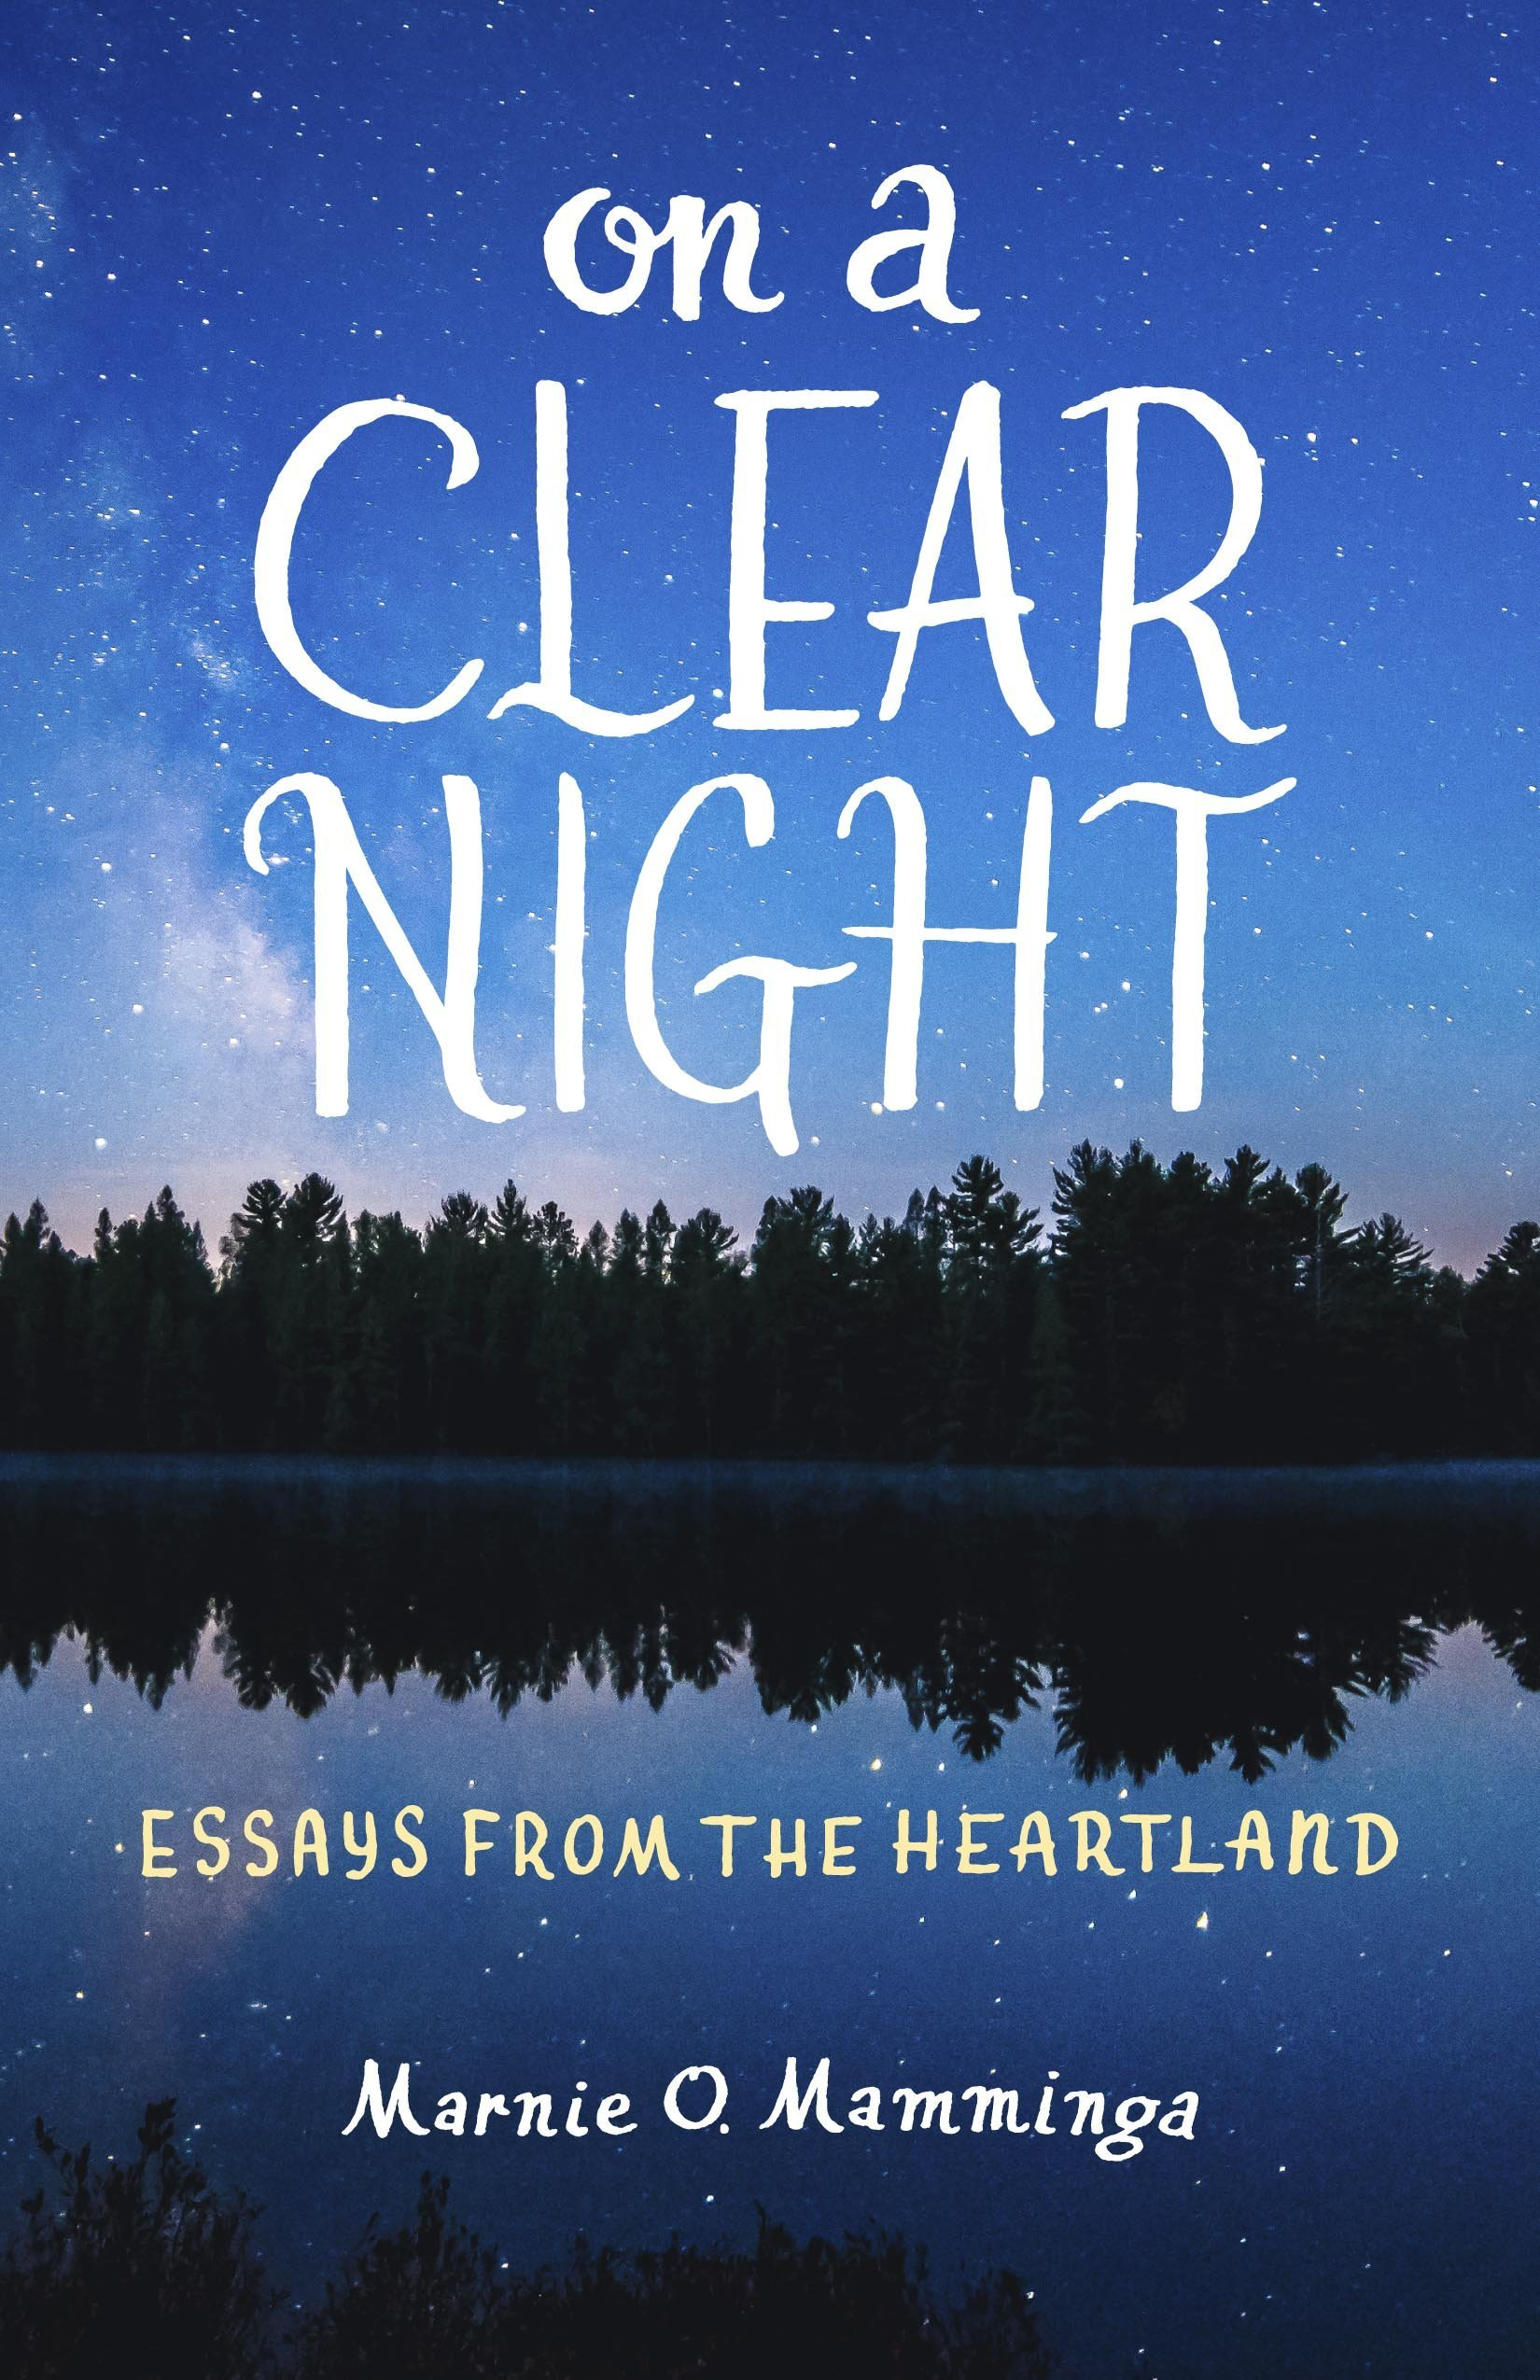 On a Clear Night Essays from the Heartland